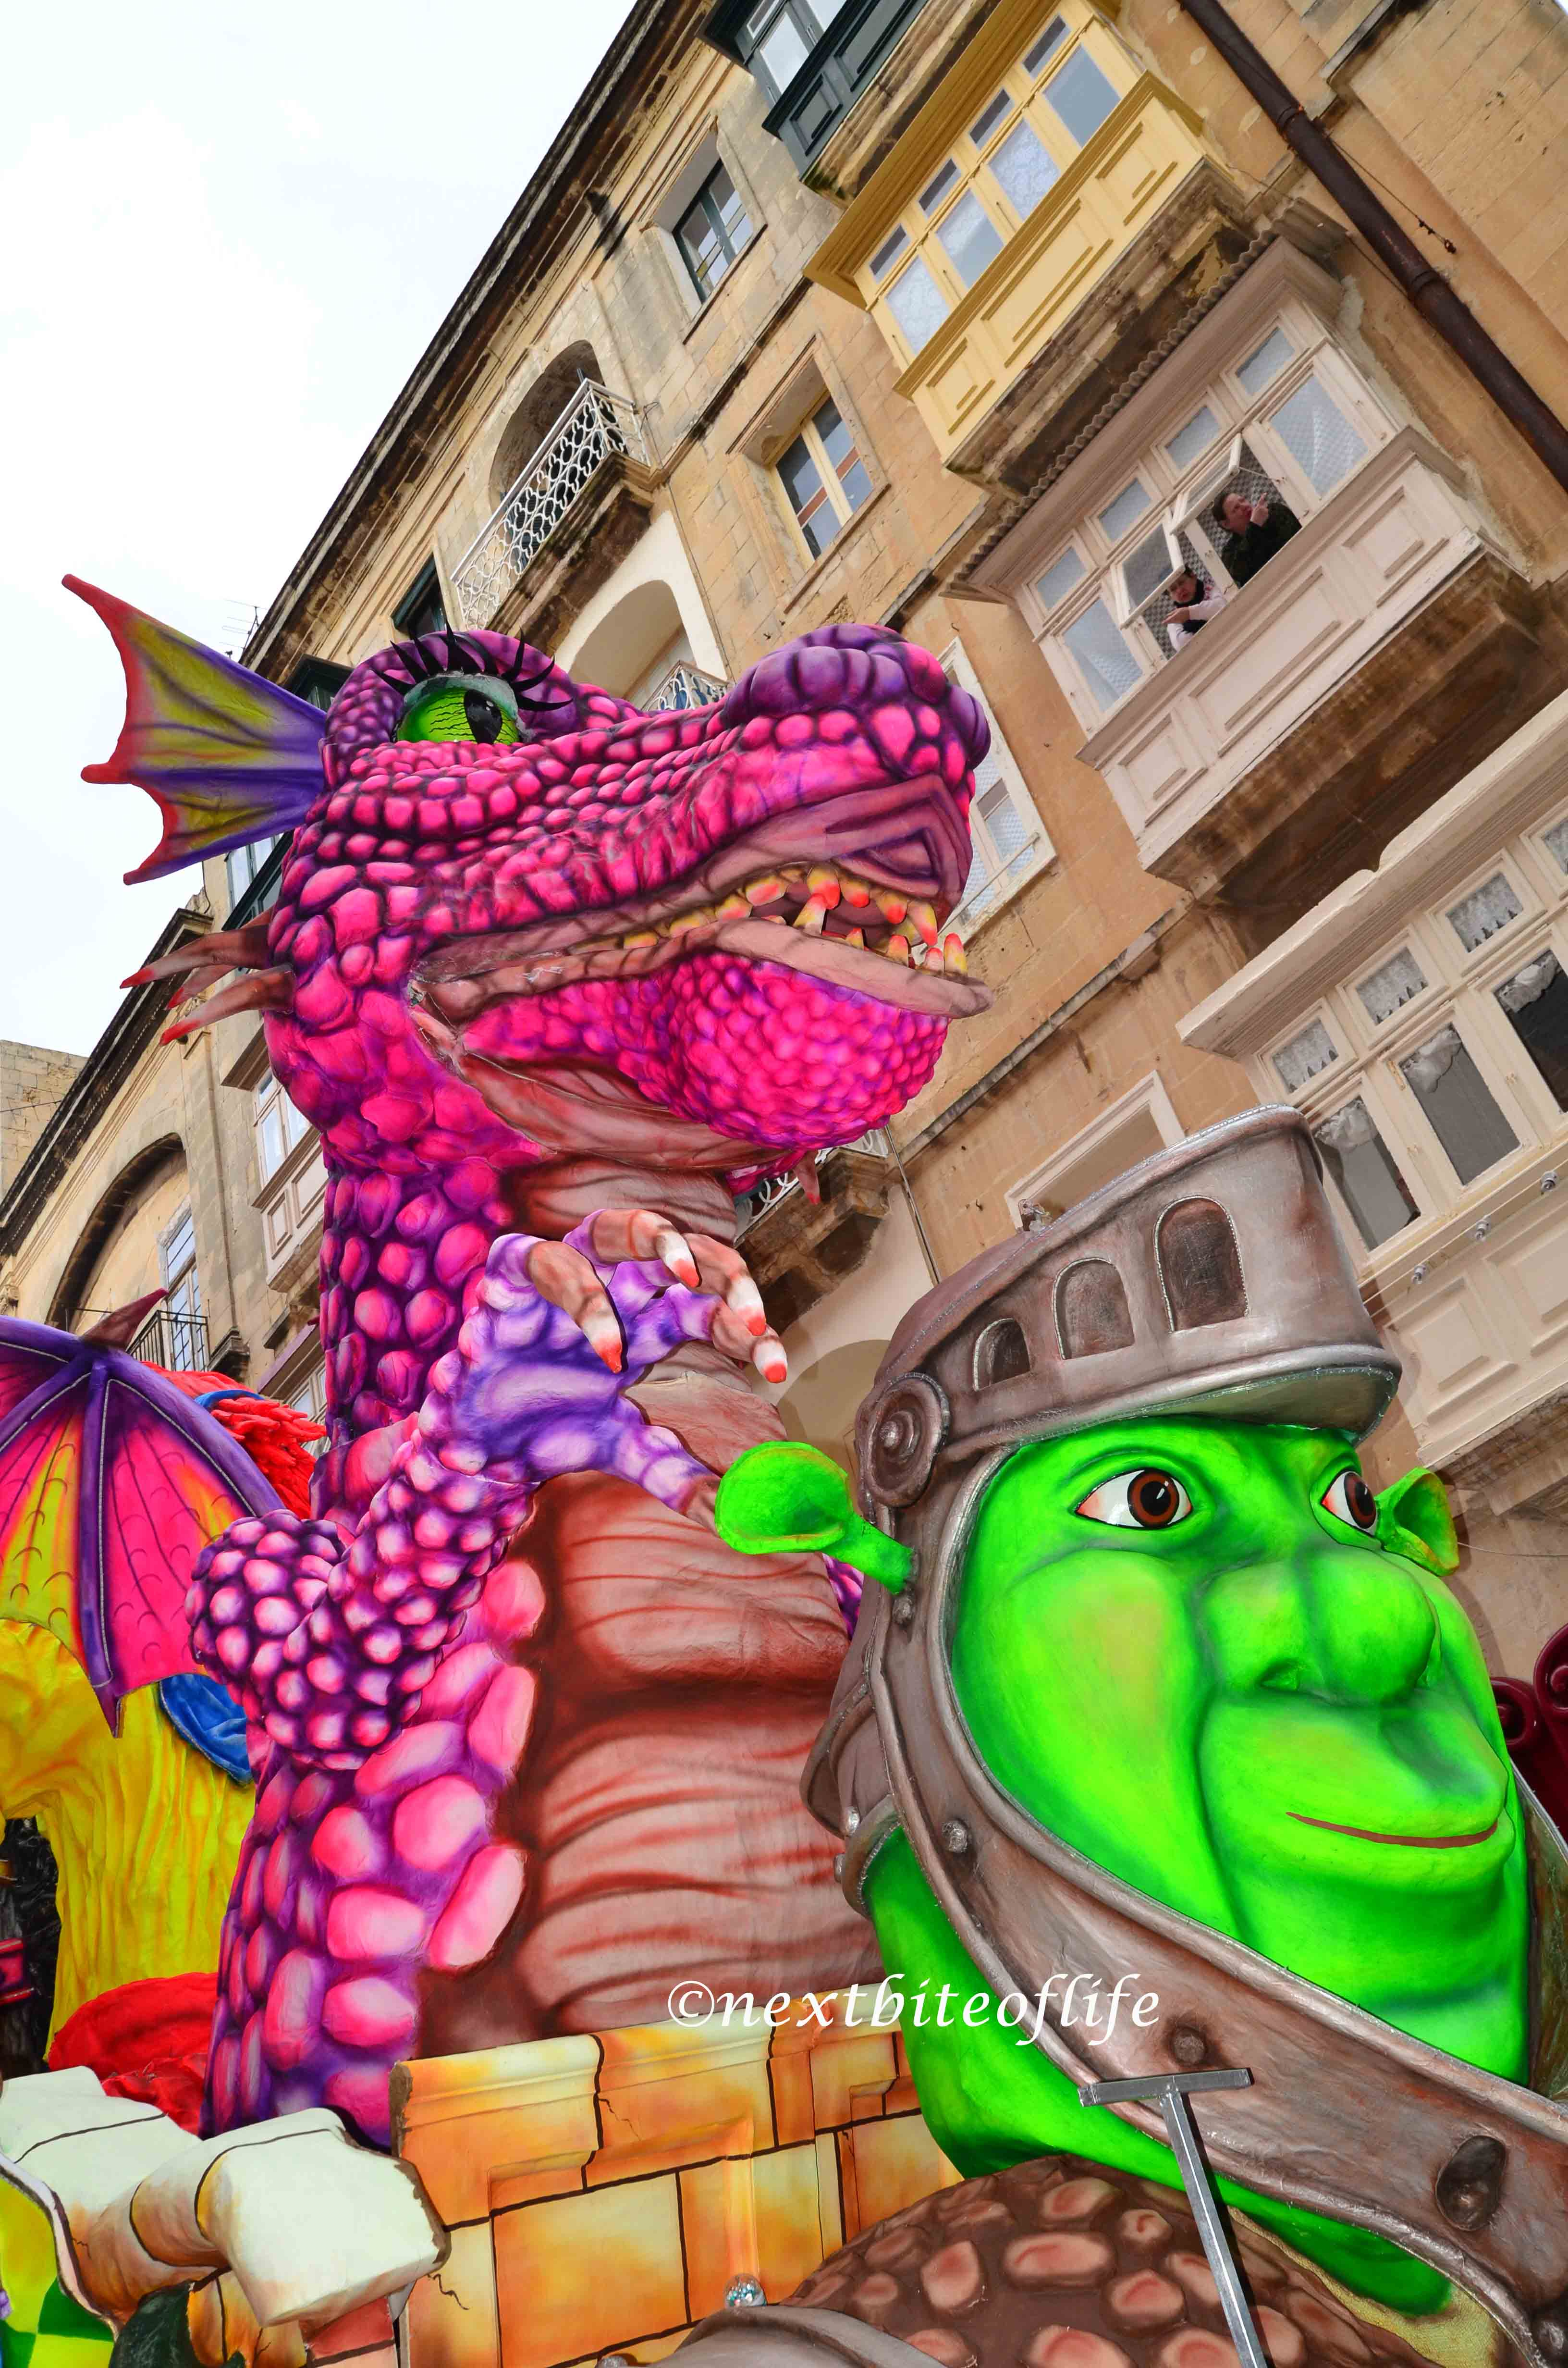 shrek at the malta carnival with the dragon above him